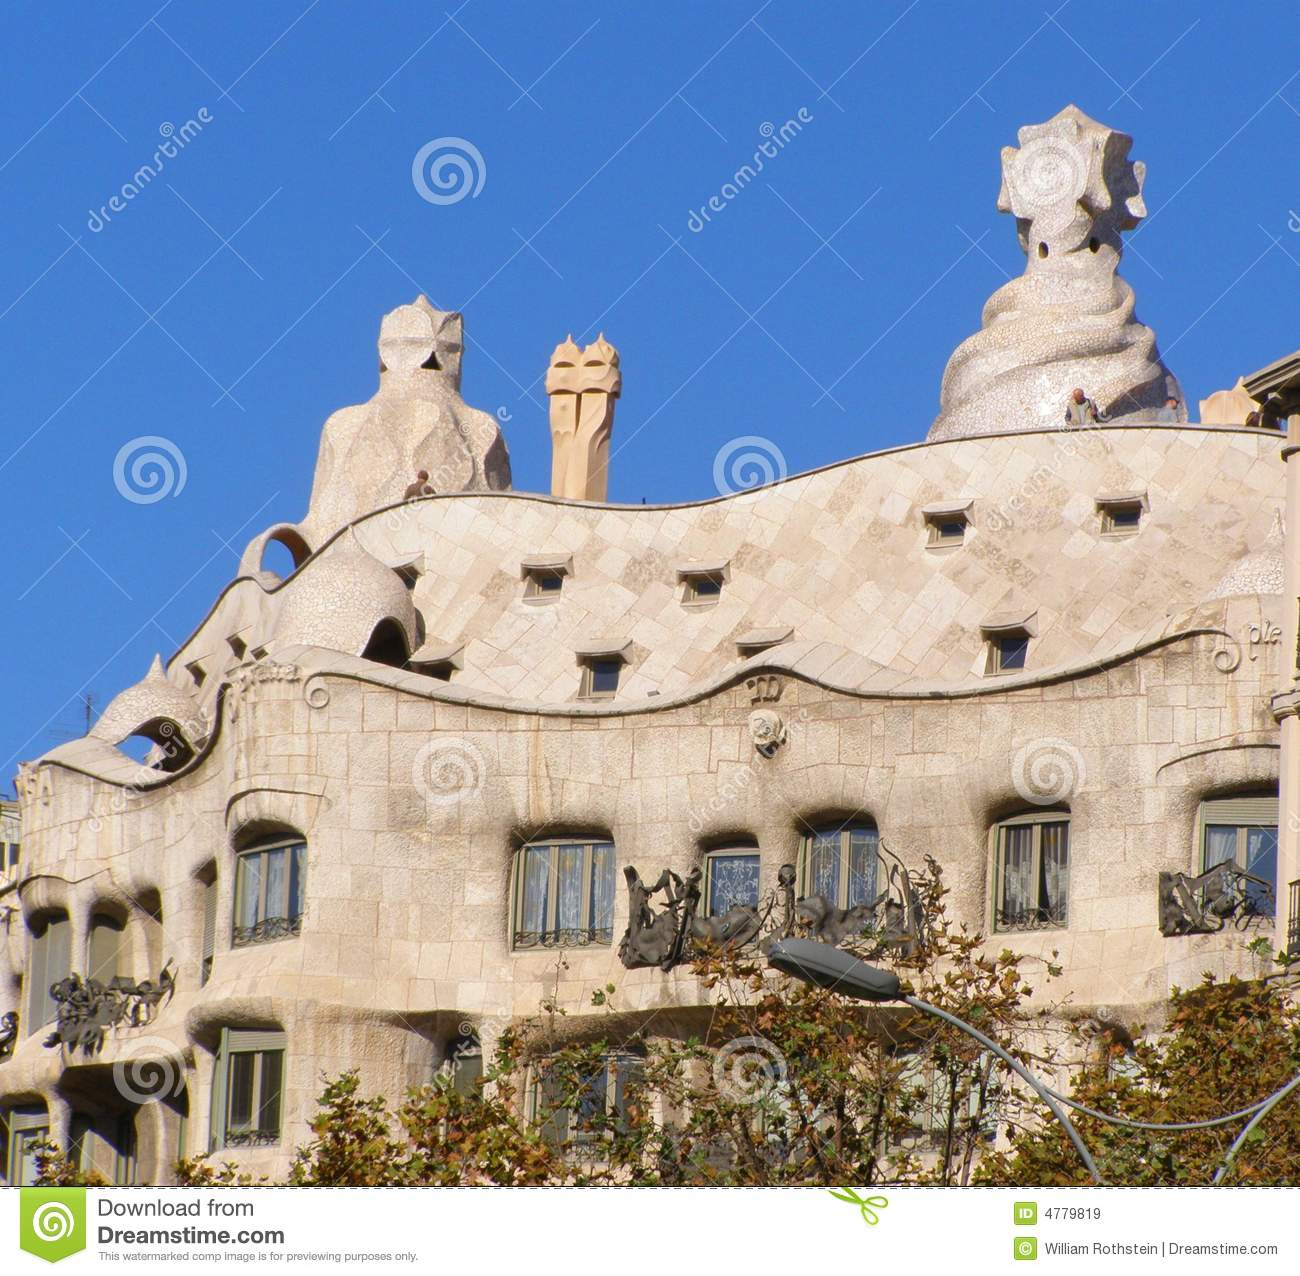 Barcelona Apartment Building: La Pedrera Gaudi Apartment Building-Barcelona Royalty Free